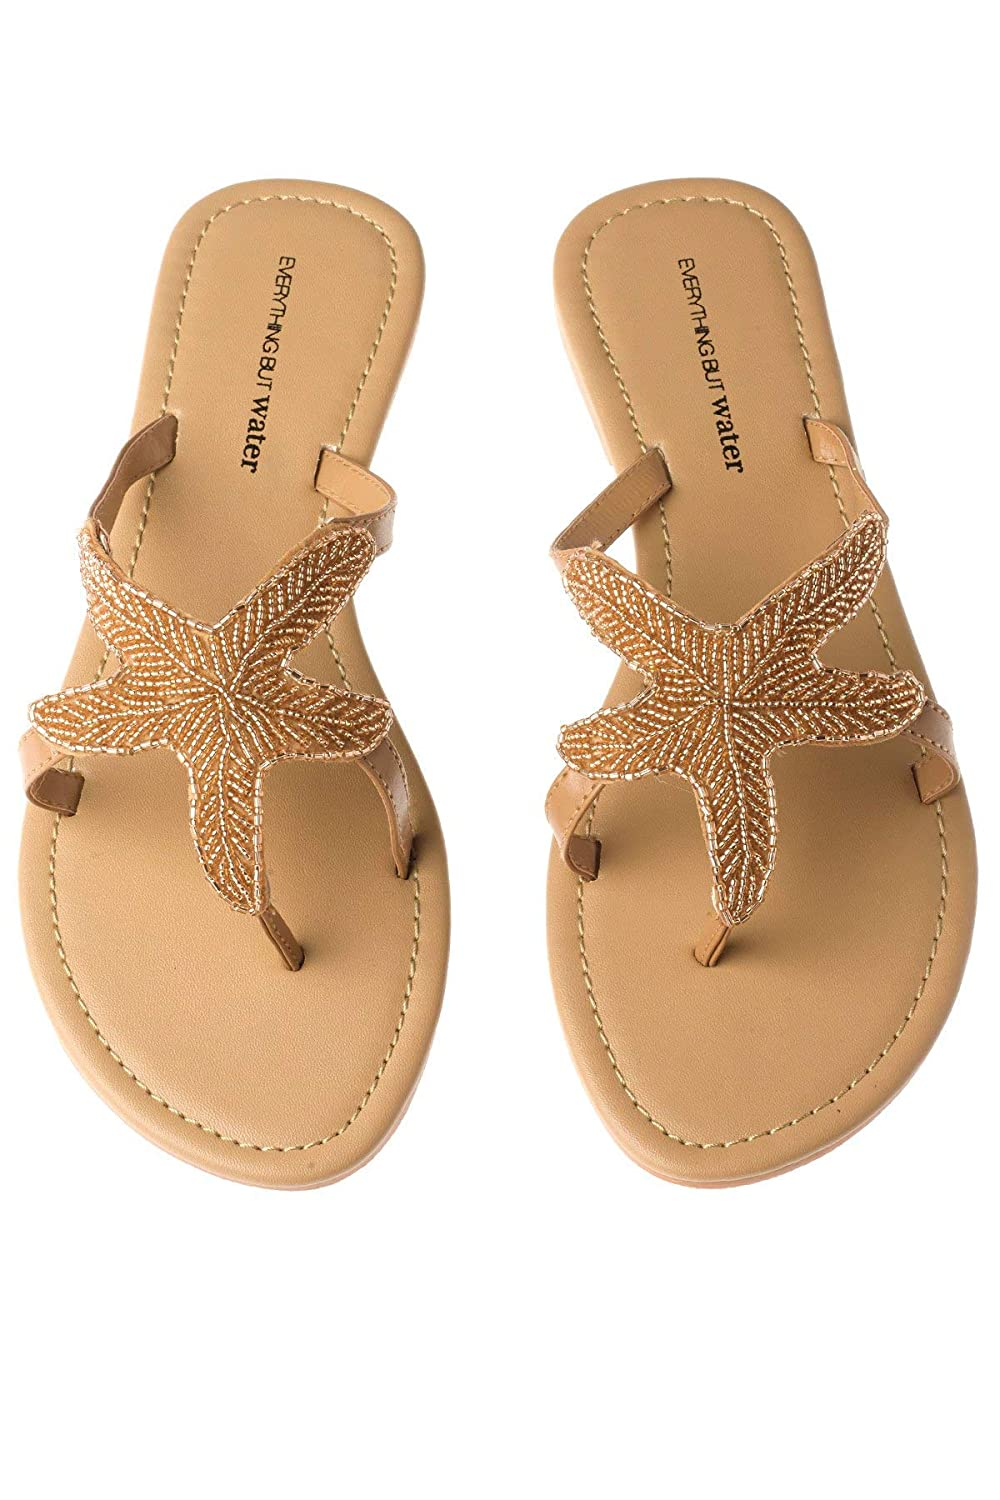 Women's Champagne Beaded Starfish Flip-Flop Thong Sandals - DeluxeAdultCostumes.com